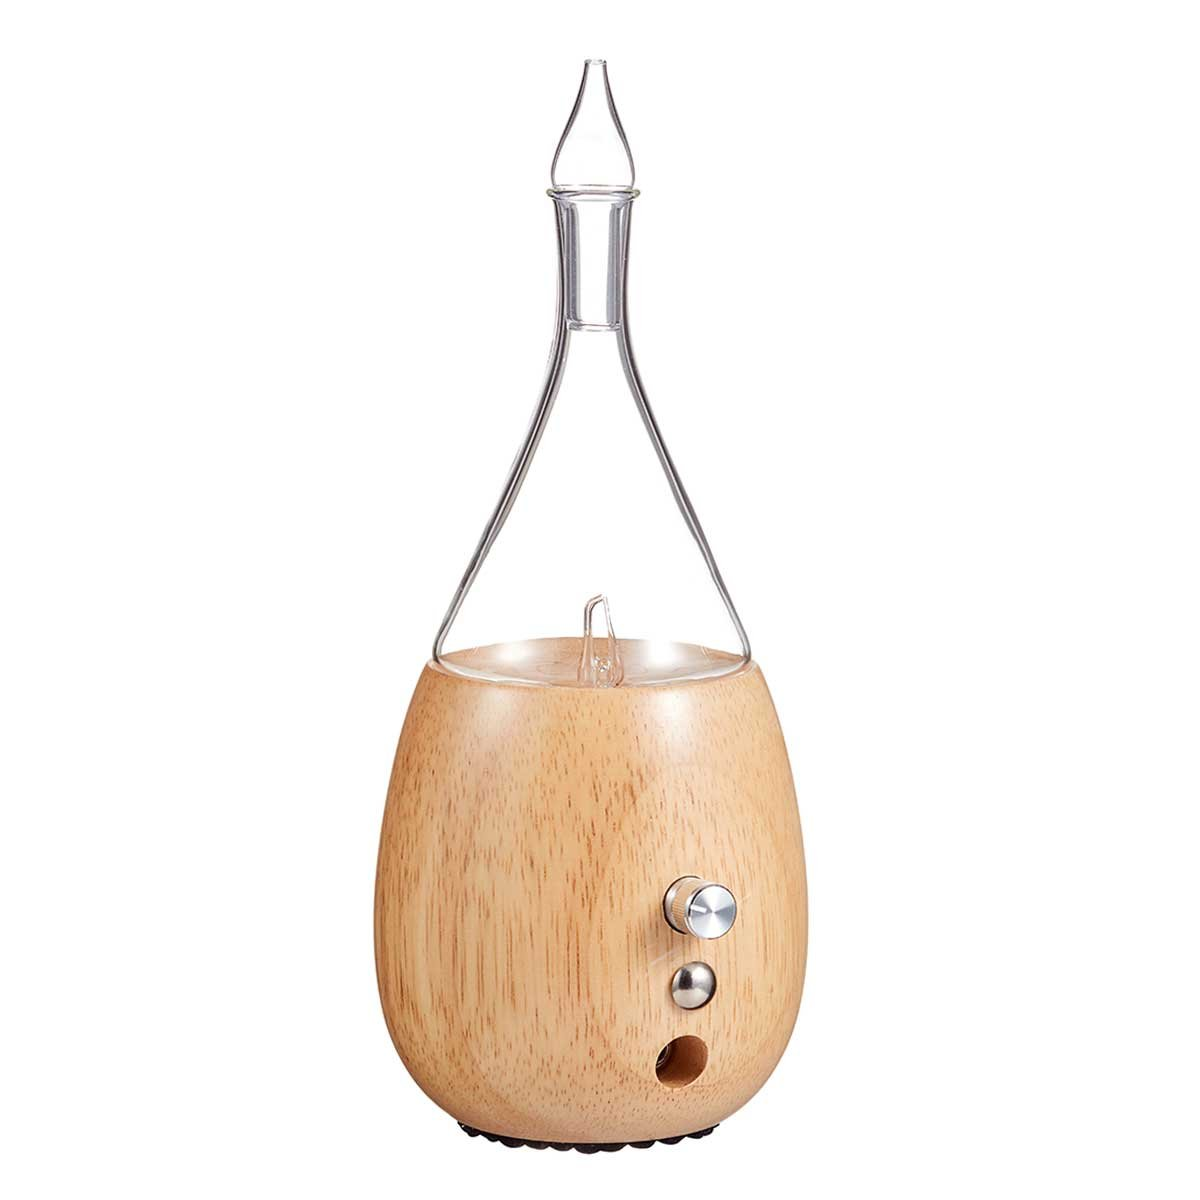 Raindrop Nebulizing Essential Oil Diffuser For Aromatherapy By Organic Aromas Light-colored Wood Base and Glass Reservoir